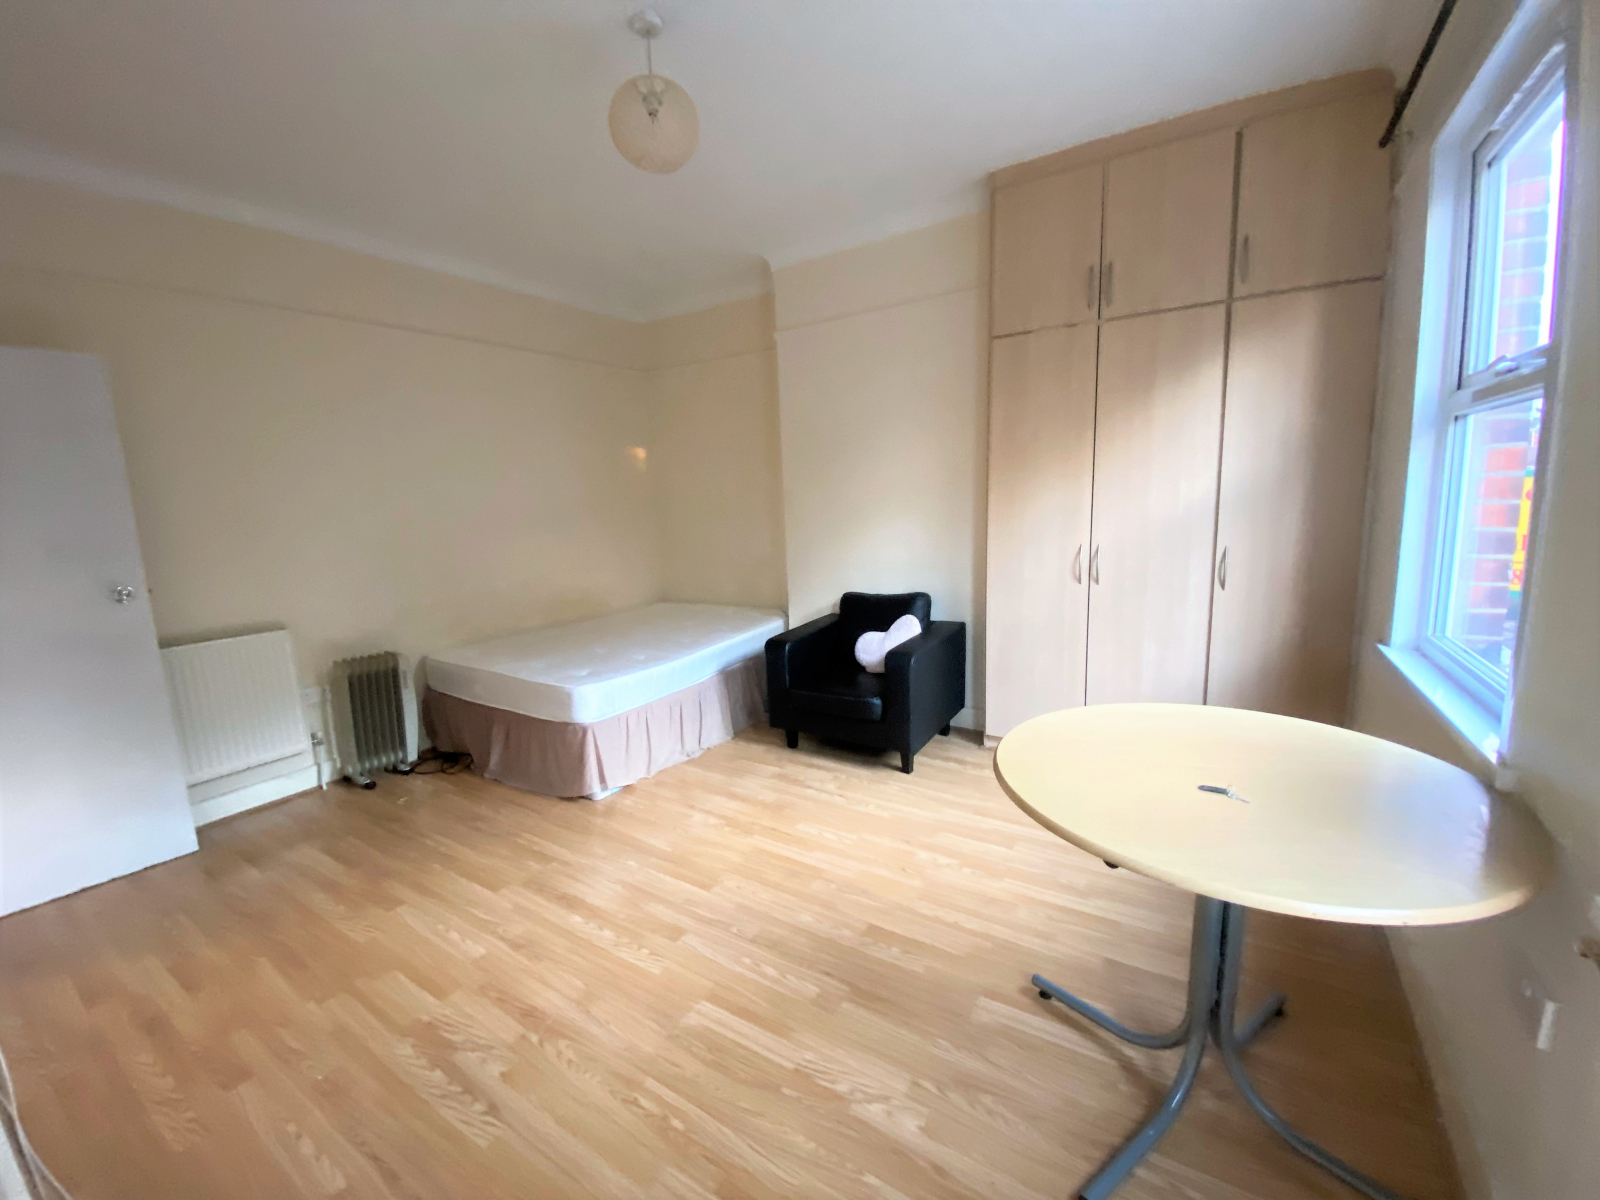 Studio flat to rent in Thornbury road, Osterley, Middlesex 1